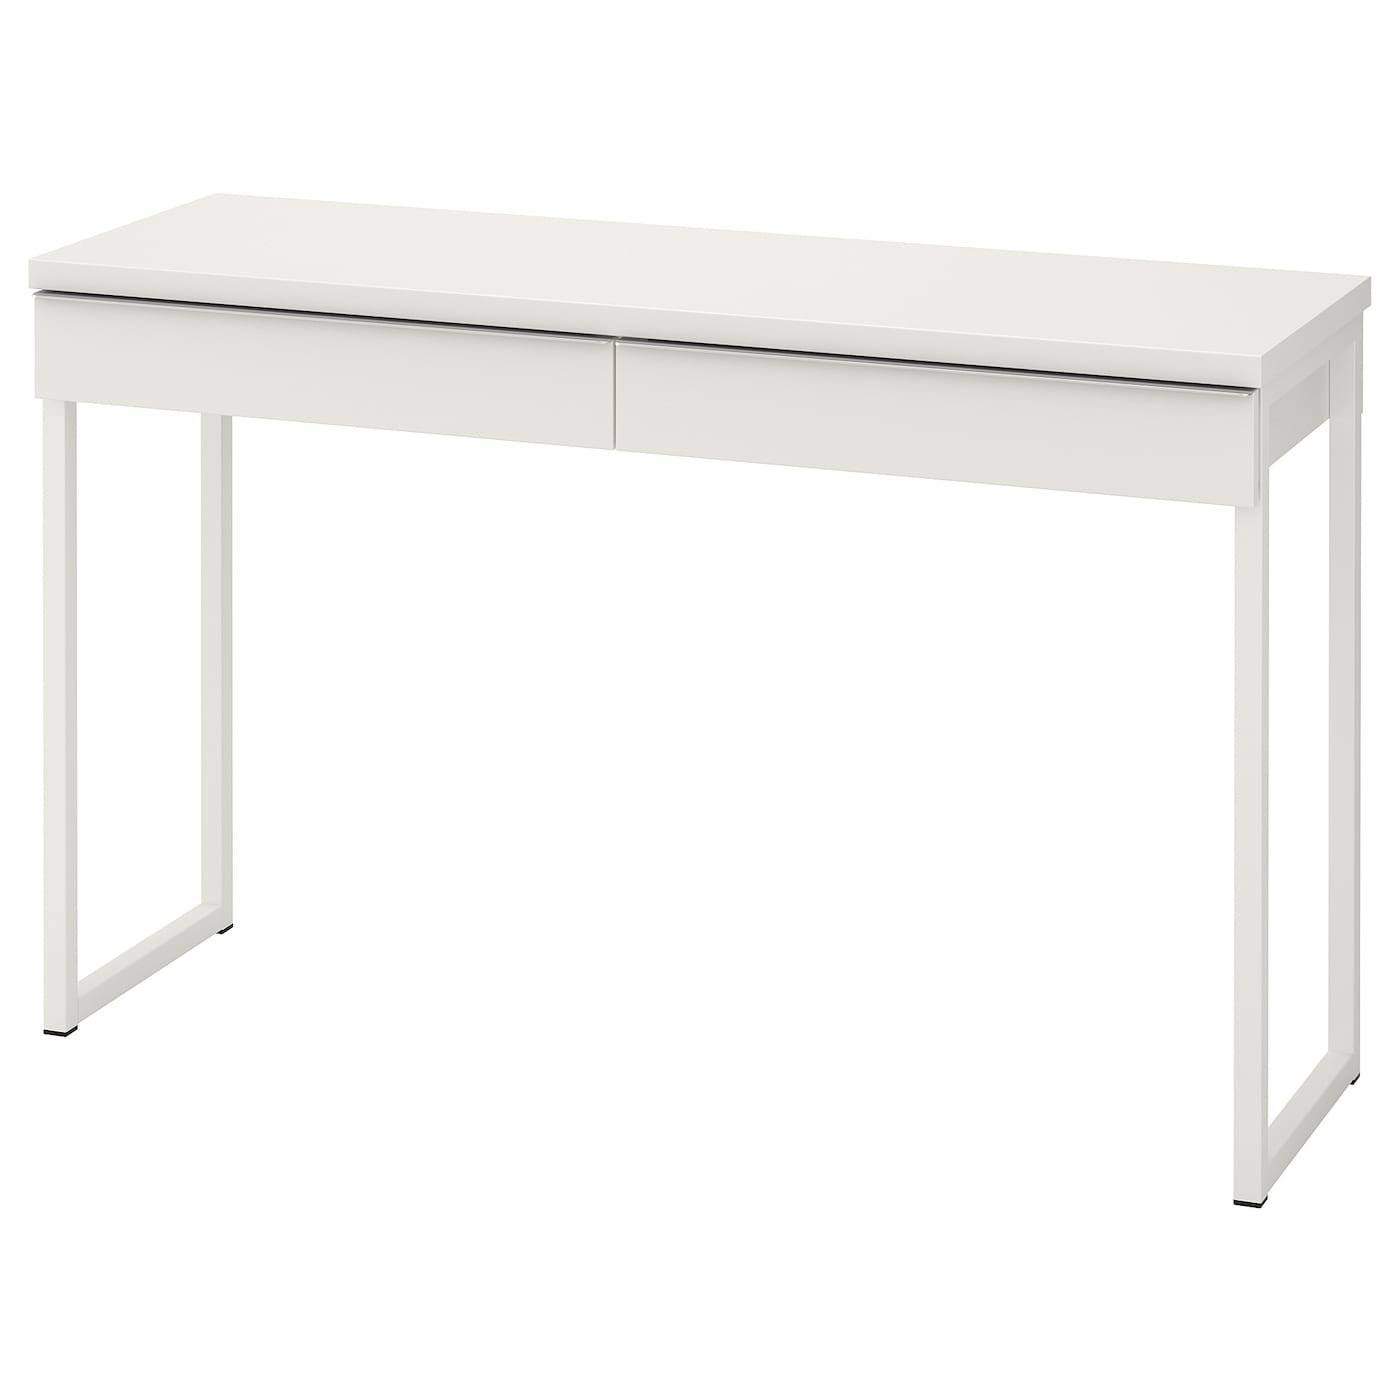 Bestå Burs Desk High Gloss White